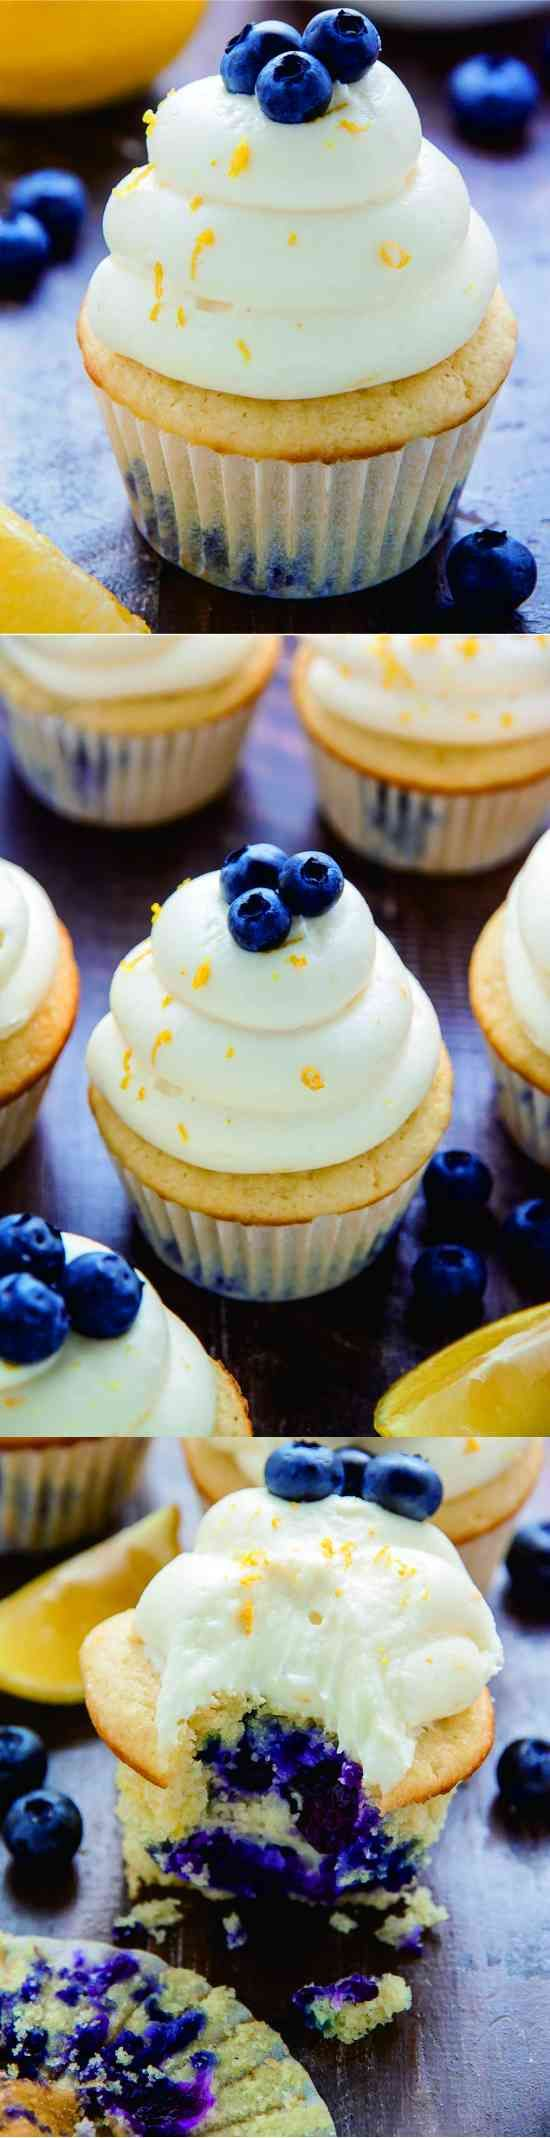 LEMON BLUEBERRY CUPCAKES - baked, blueberry, butter, cheese, cream, creamcheese, cupcakes, dessert, fresh, frosting, frozen, lemon, lemon juice, milk, muffin, recipes, vanilla